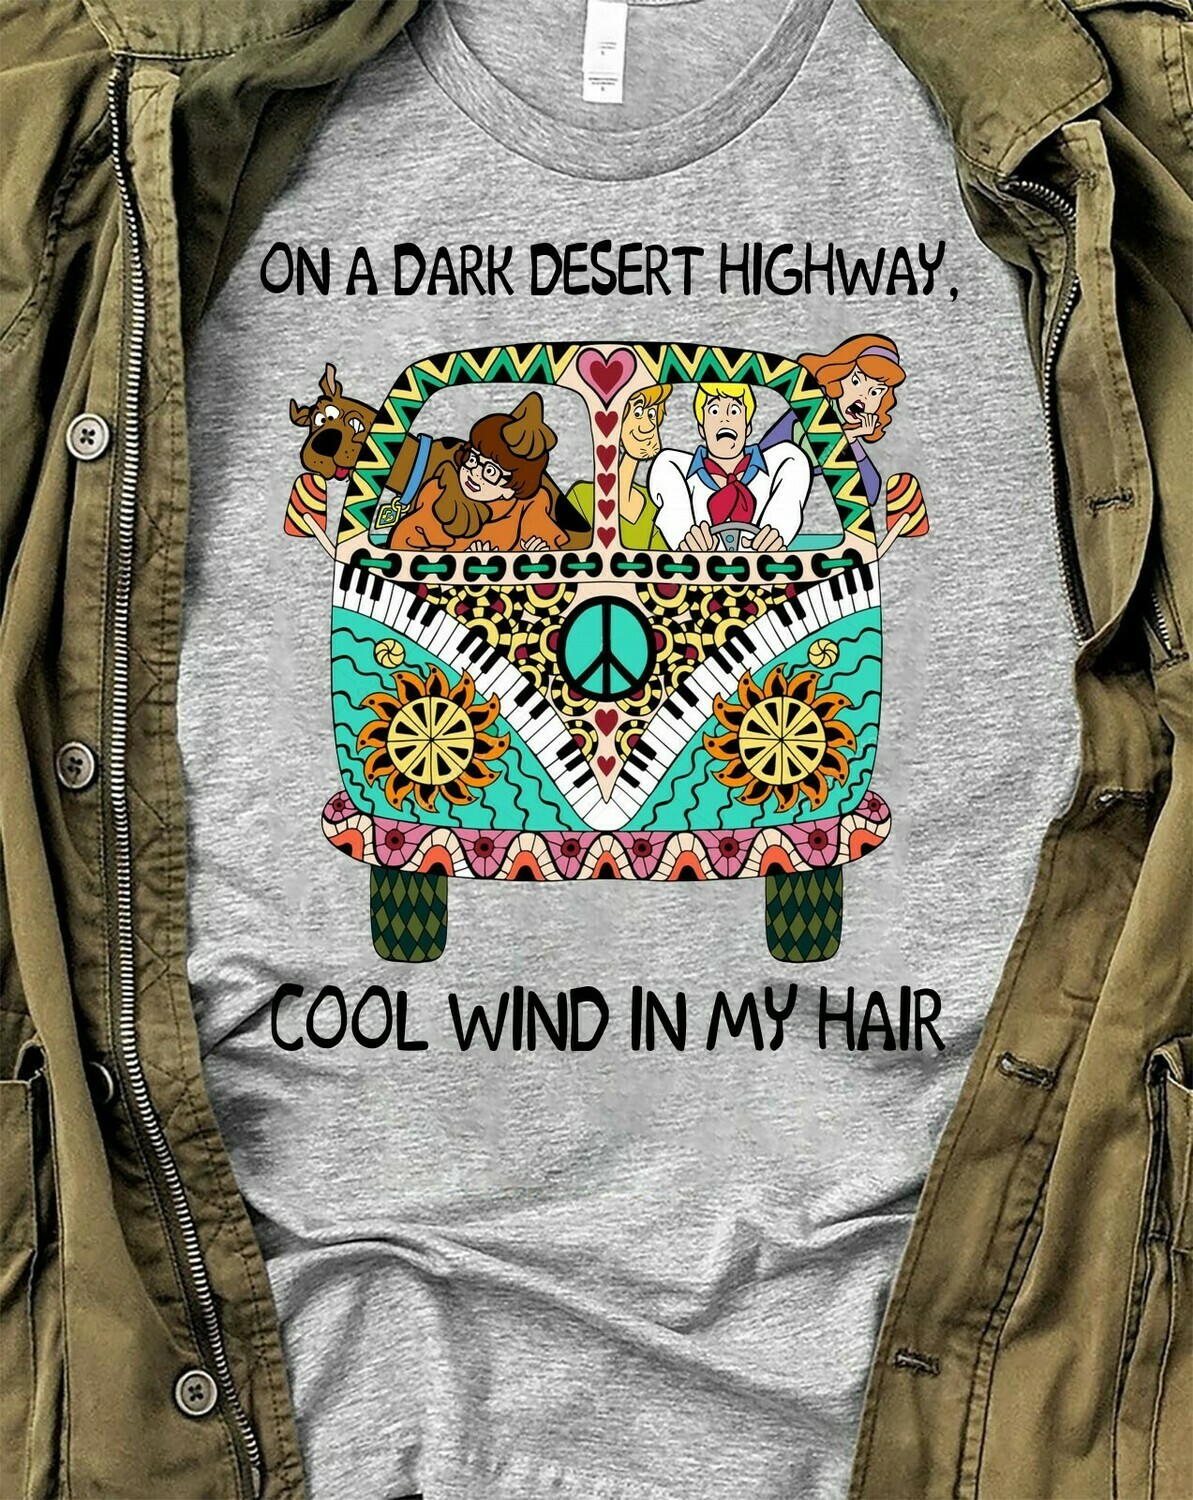 Hippie Van Car Scooby-Doo And Friend On A Dark Desert Highway, Cool Wind In My Hair Peace Love Sun Flower Gift T-Shirt Long Sleeve Sweatshirt Hoodie Jolly Family Gifts